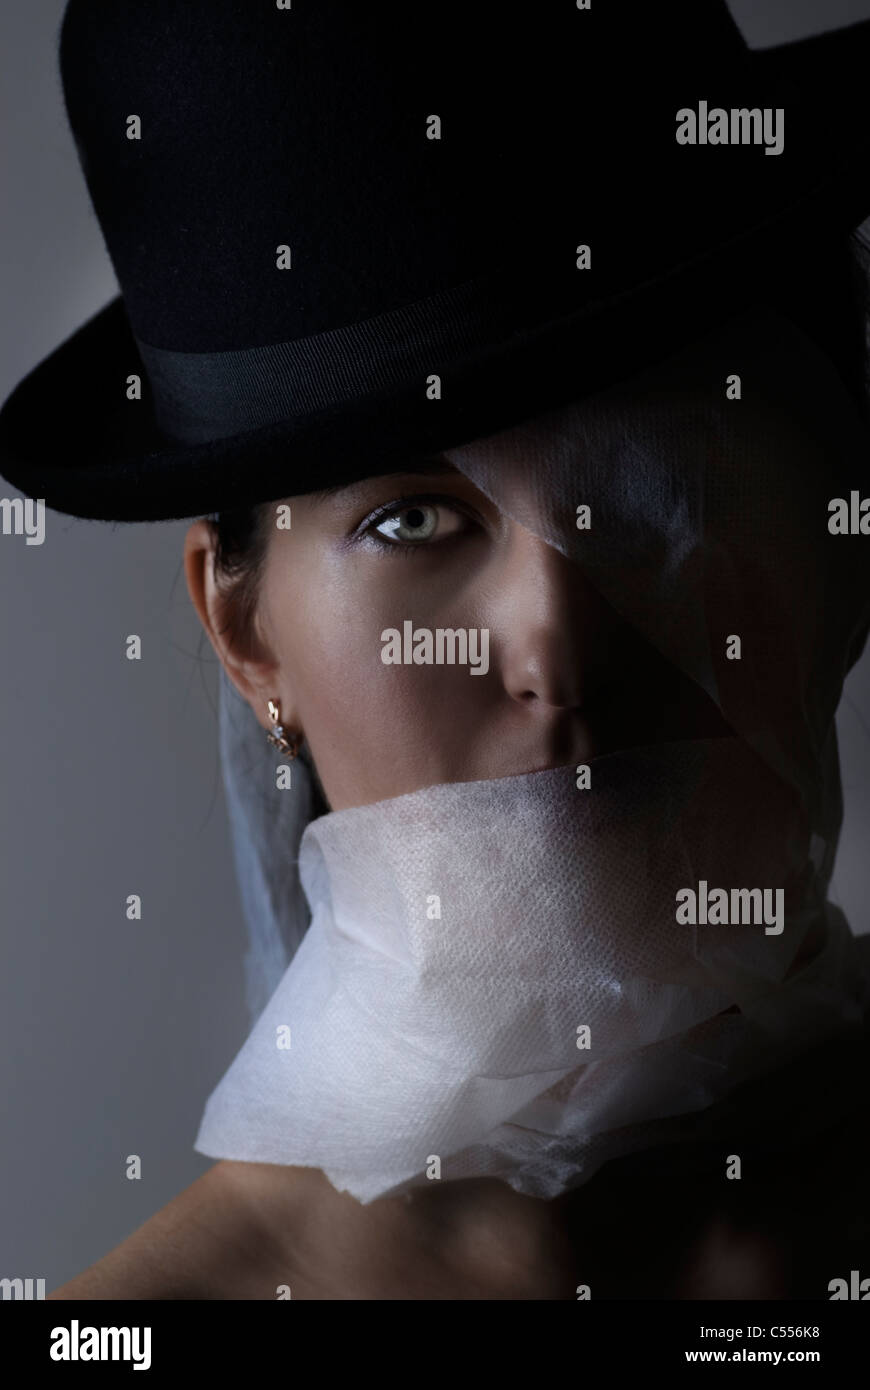 Woman wrapped in bandage wearing a bowler hat - Stock Image